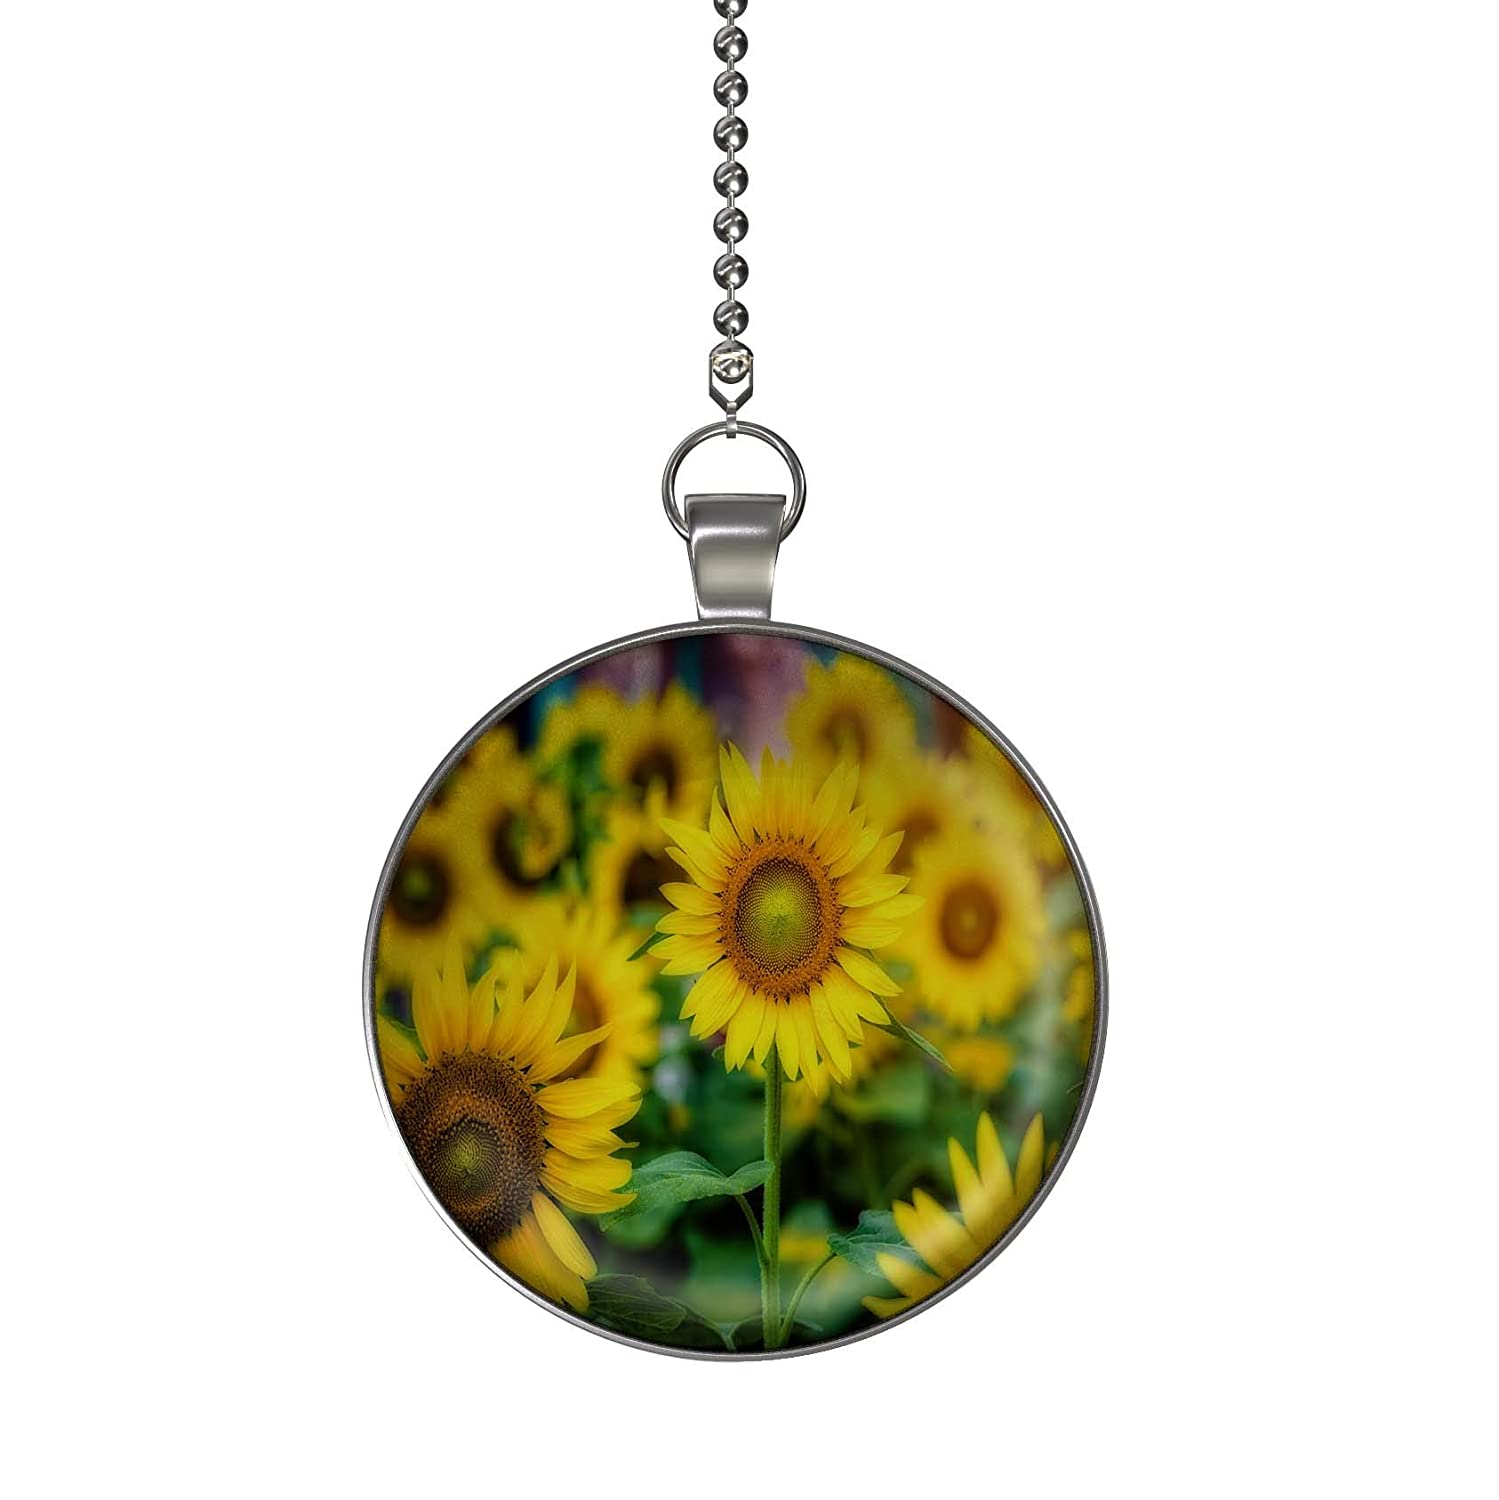 Gotham Decor The Sunflower Patch Fan//Light Pull Pendant with Chain